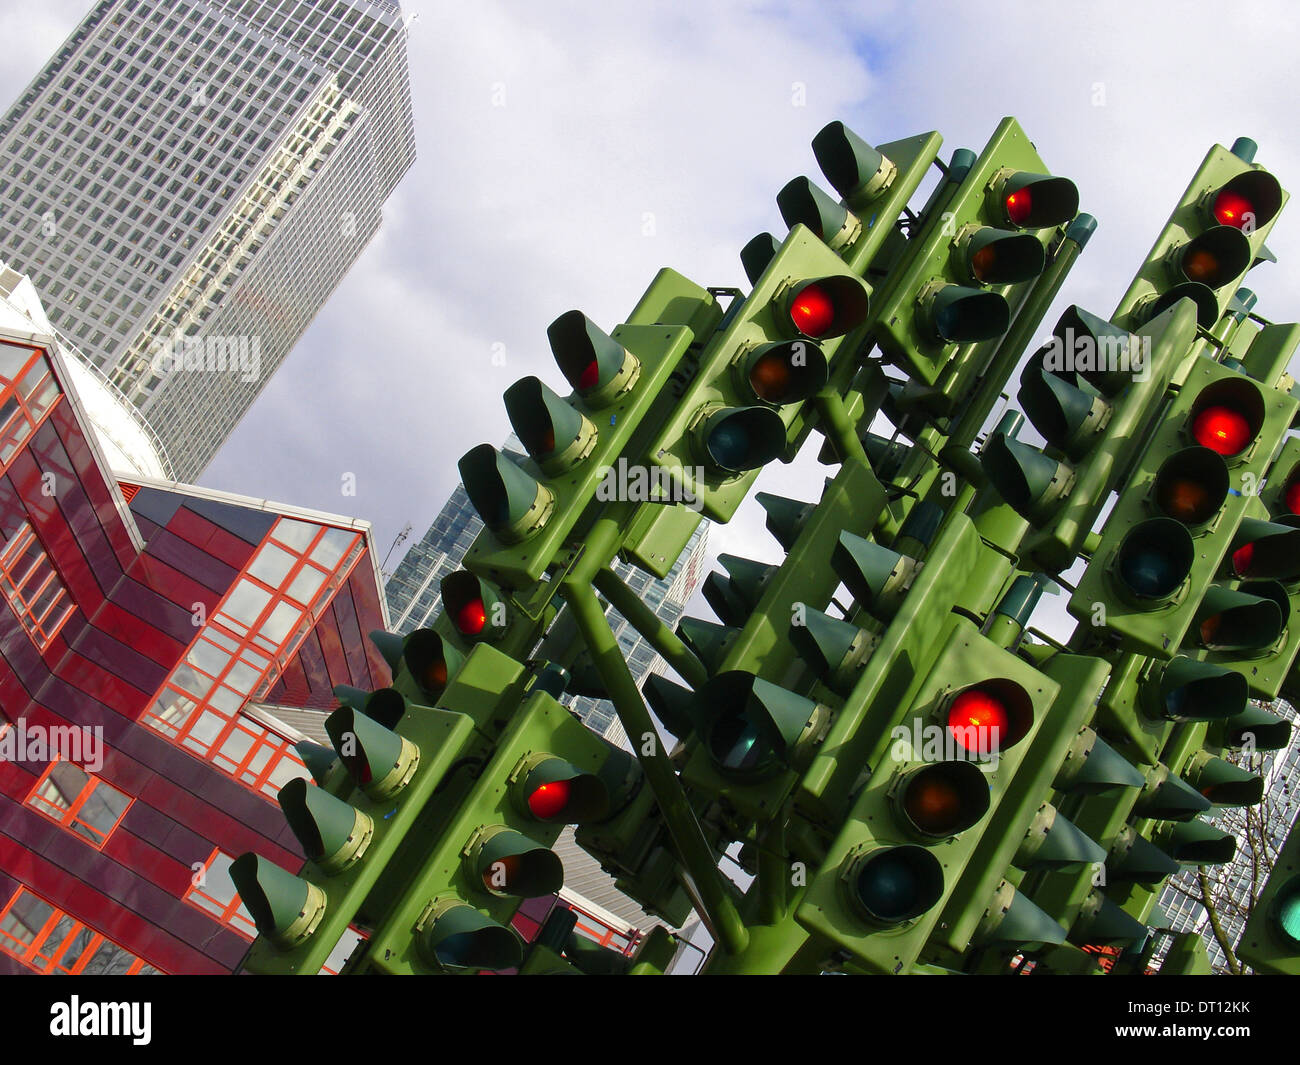 Traffic Light Tree sculpture created by the French sculptor Pierre Vivant located originally situated on a roundabout in Millwall, at the junction of Heron Quay, Marsh Wall and Westferry Road,. London. England UK - Stock Image